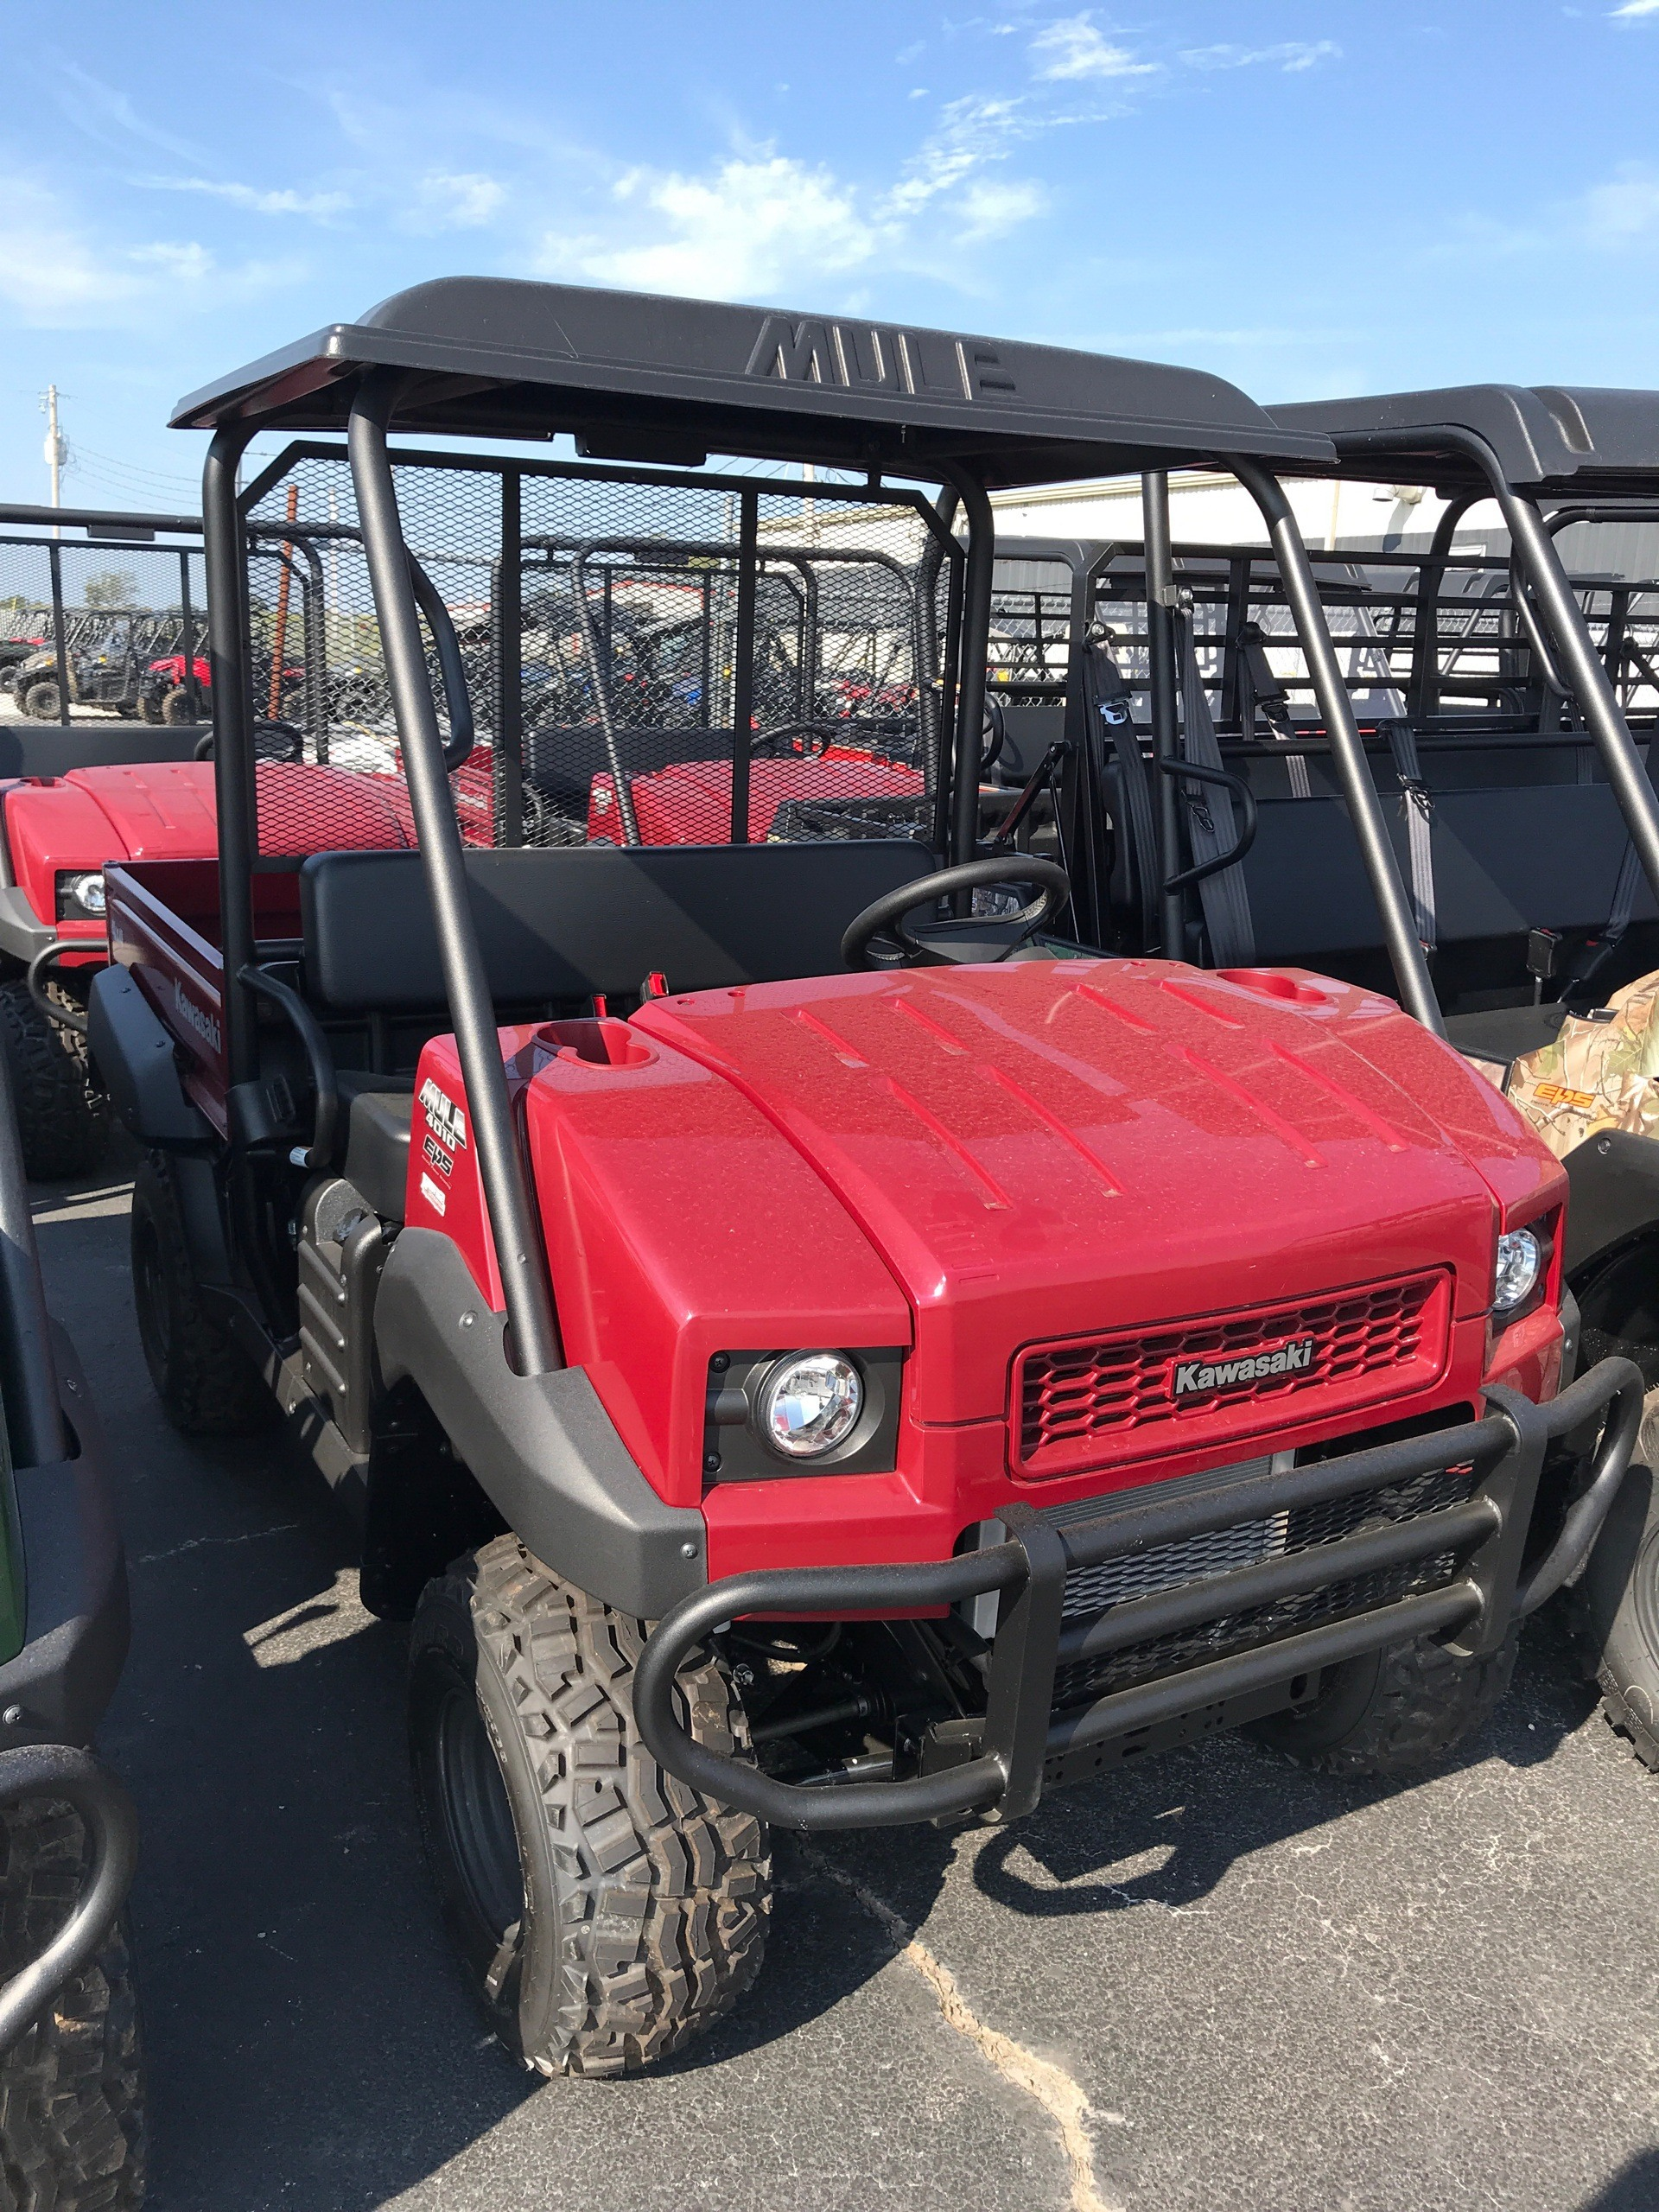 2020 Kawasaki Mule 4010 4x4 in Bolivar, Missouri - Photo 1